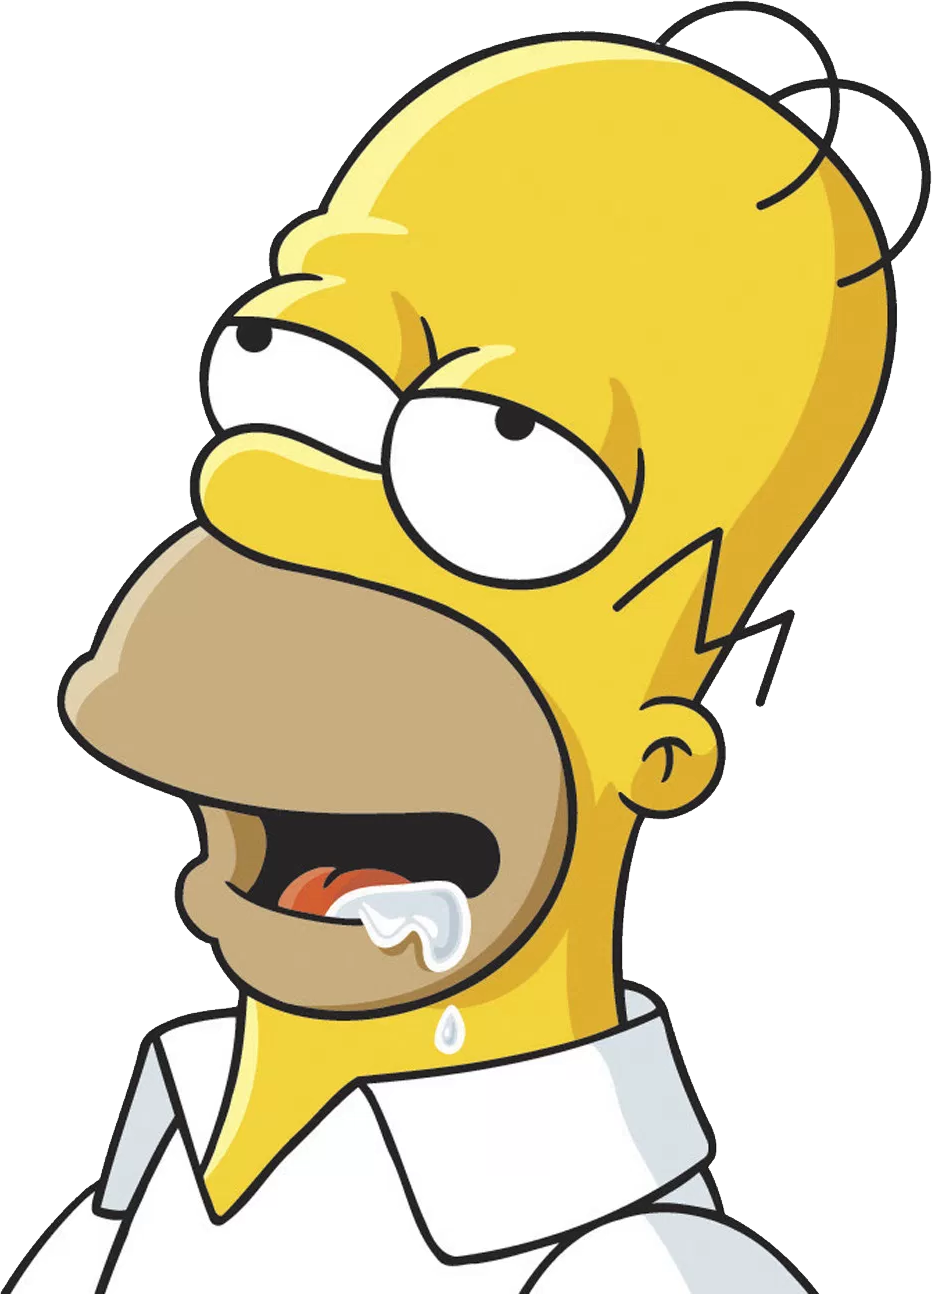 Image png. Simpsons icon clipart web